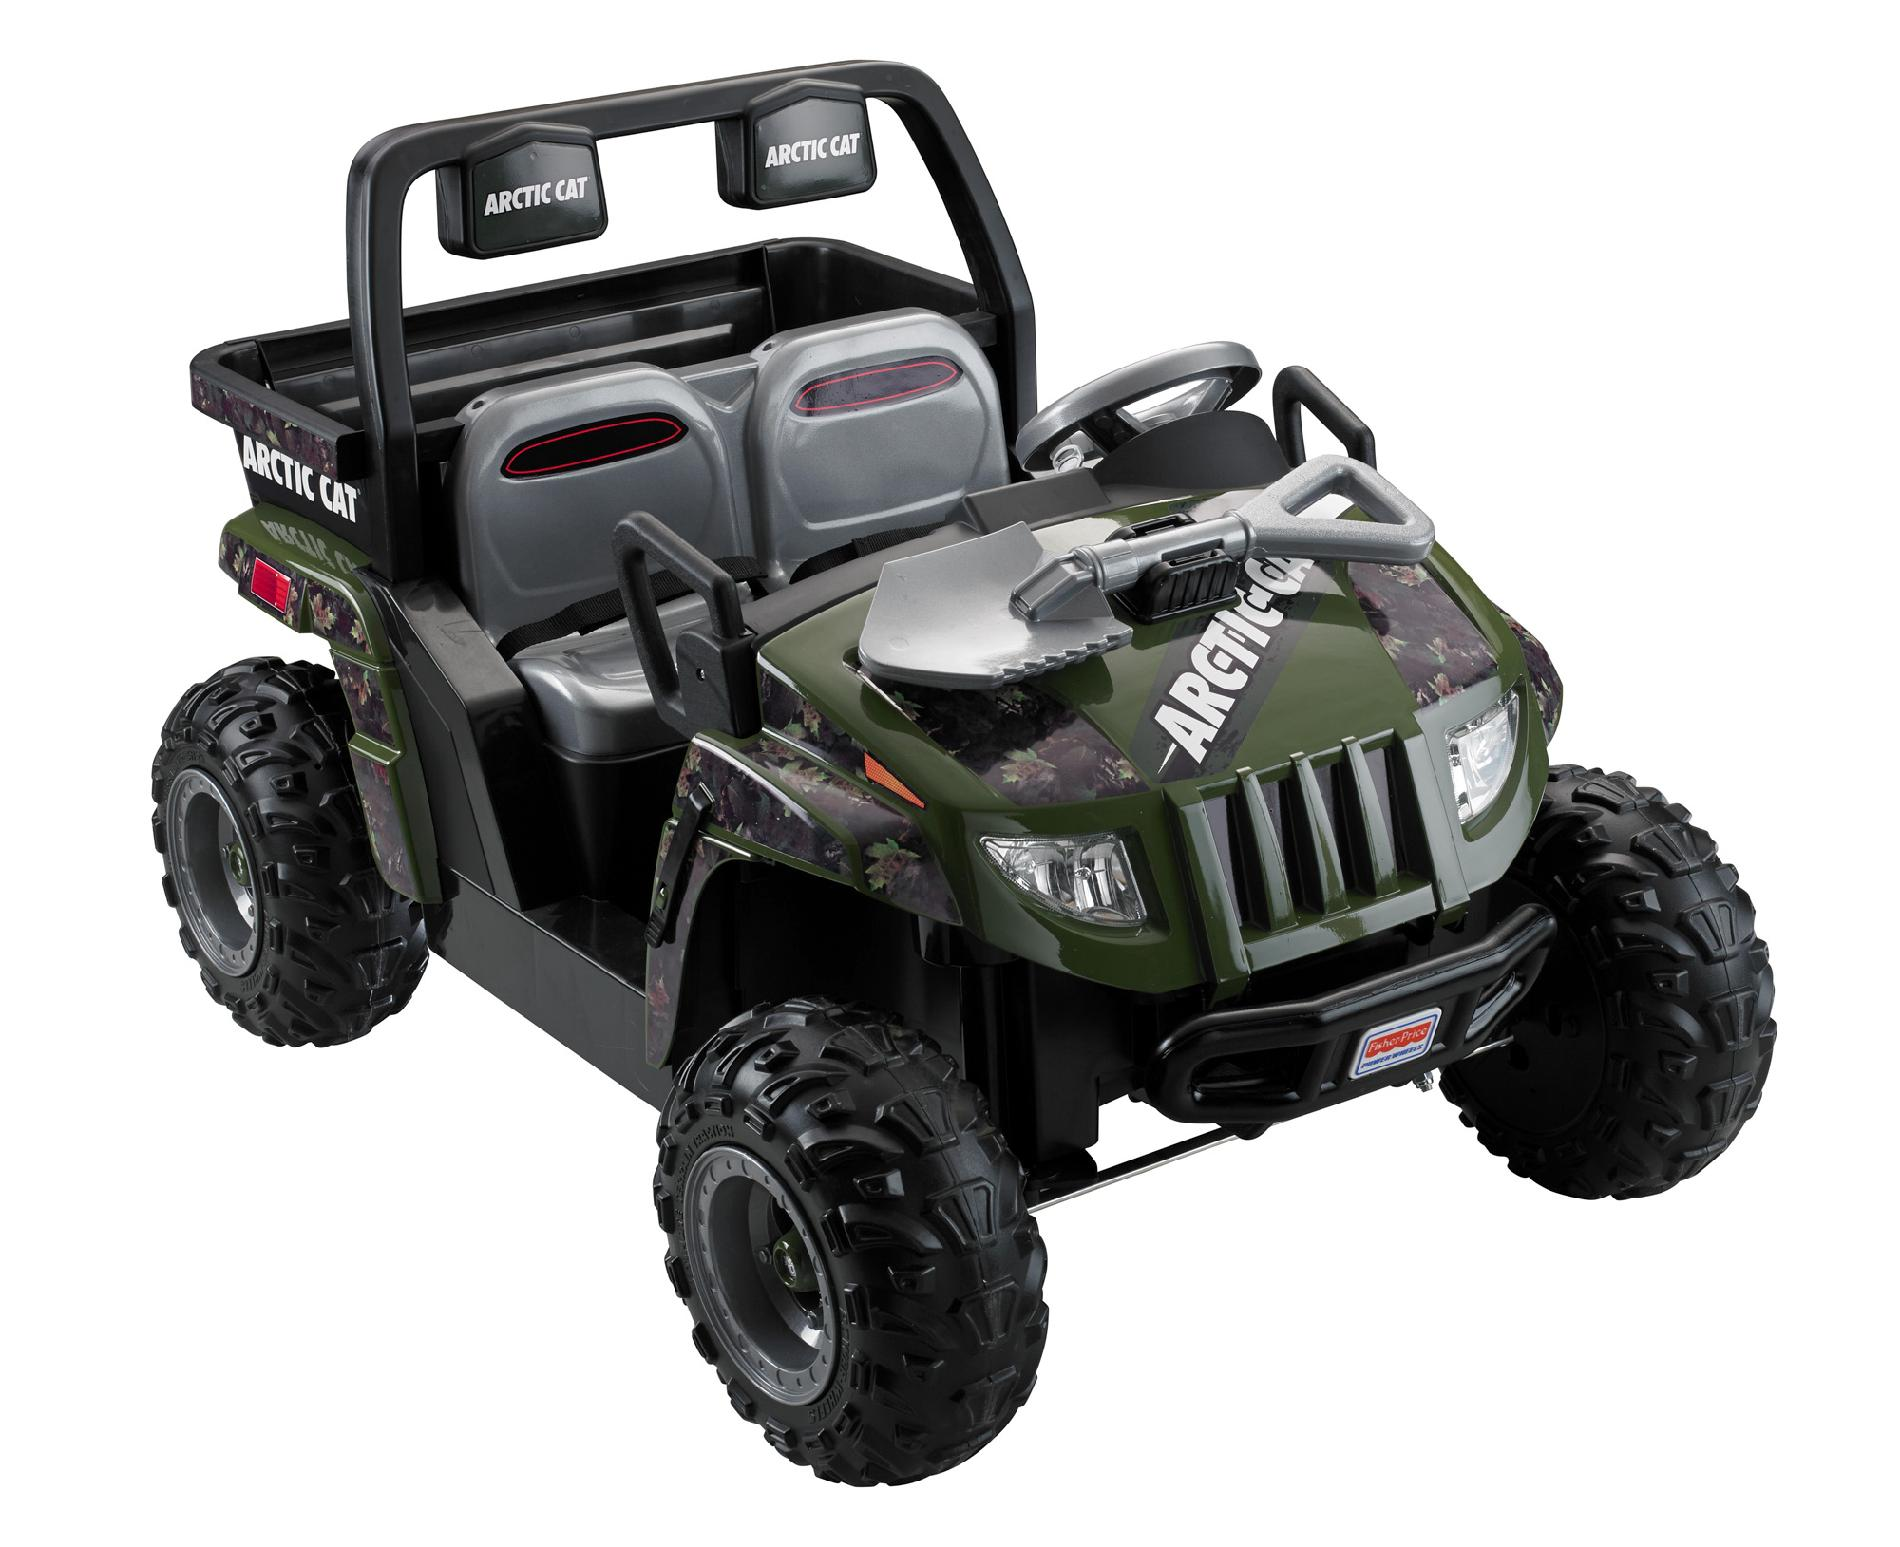 Battery Operated Vehicles for Kids Inspirational Power Wheels 12v toy Ride On Arctic Cat Utv Camo